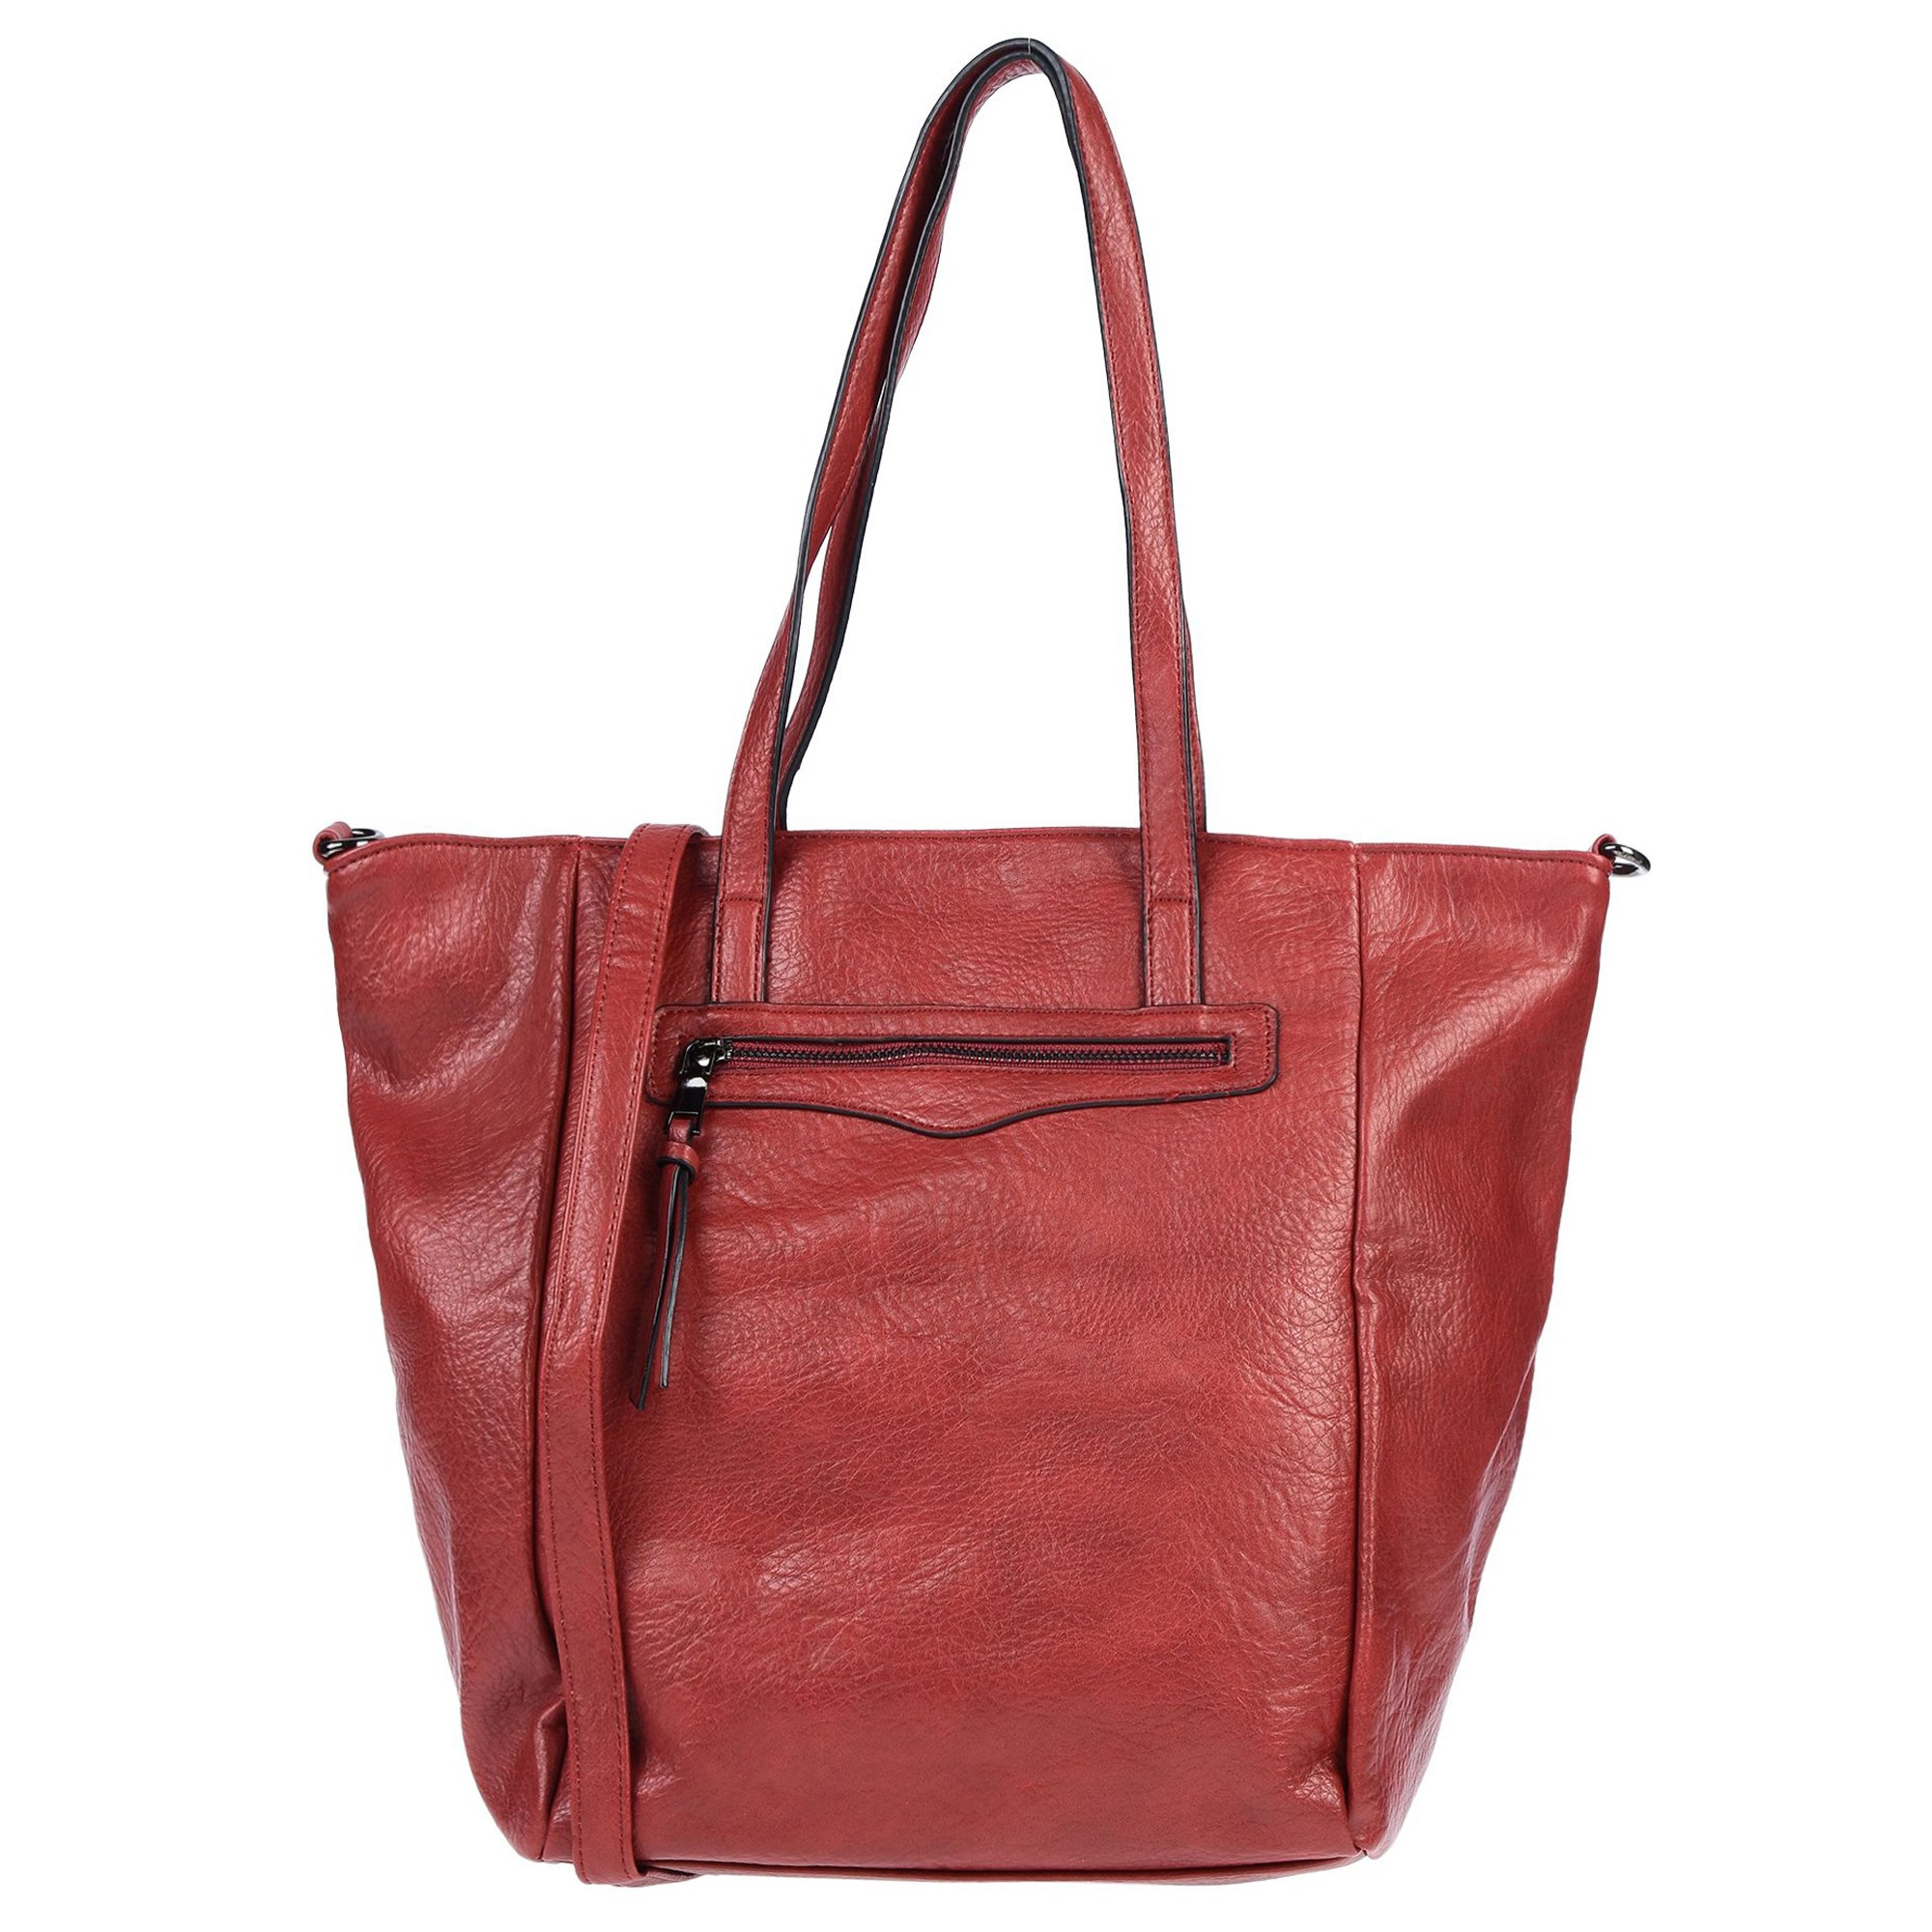 Maury Italian Made Cherry Red Buttersoft Leather Tote